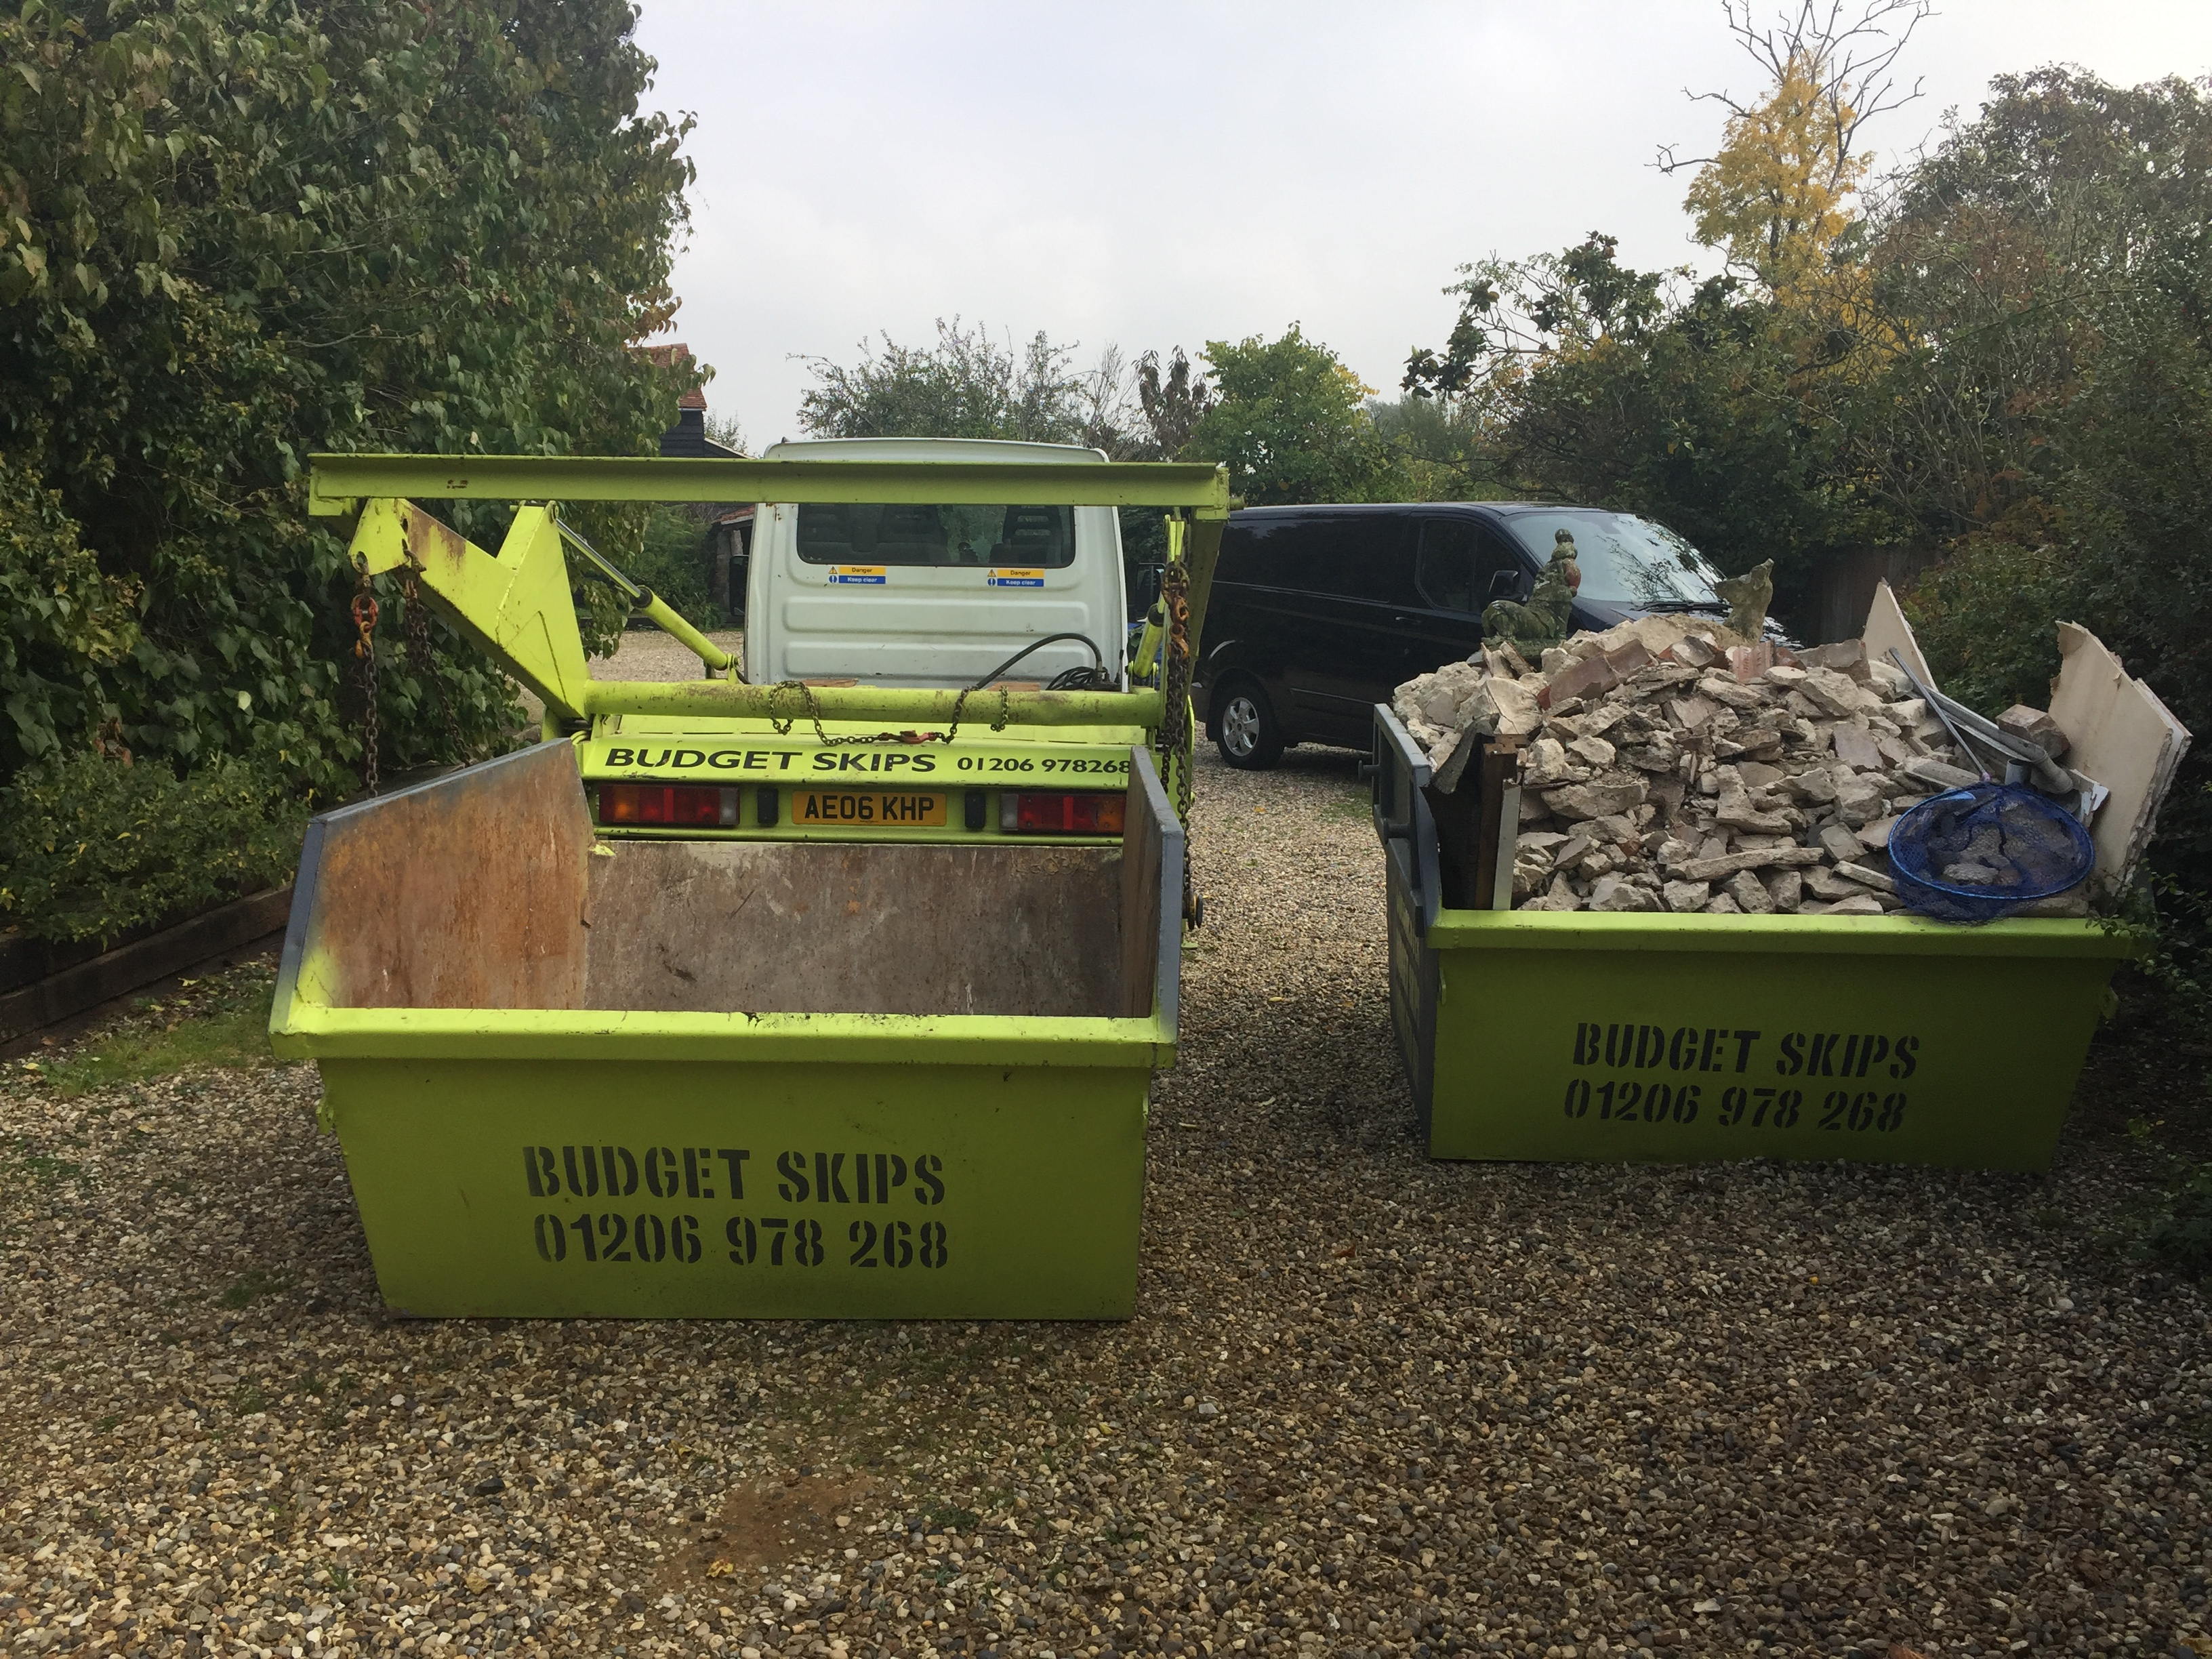 Changeover Skip in West Bergholt